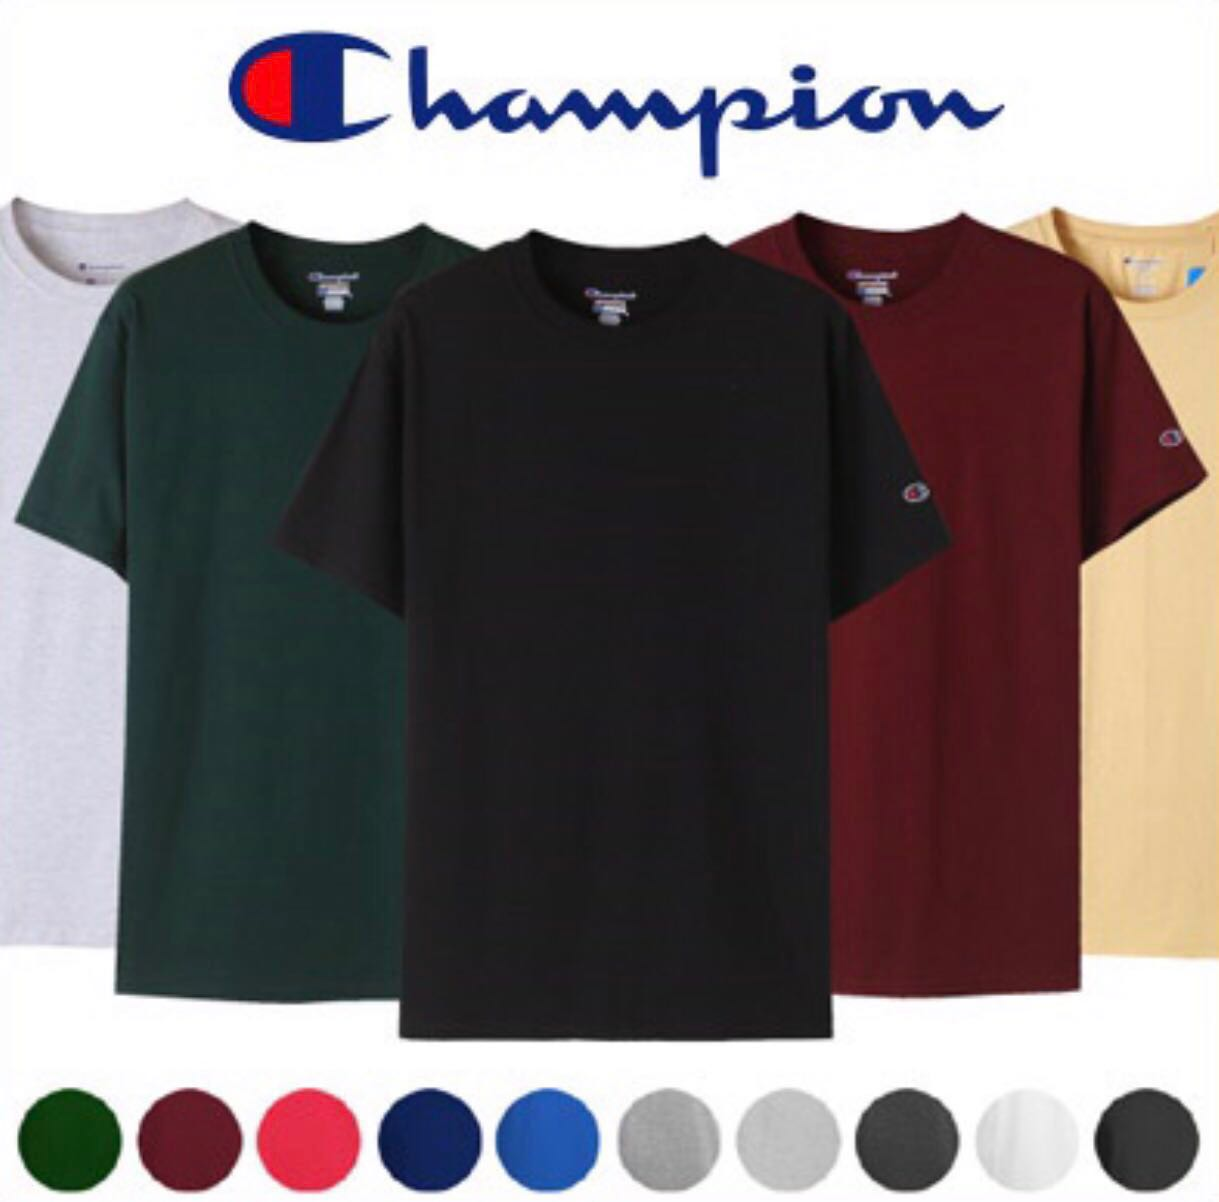 a9c30dcf Champion Shirt T425 PO, Men's Fashion, Clothes, Tops on Carousell